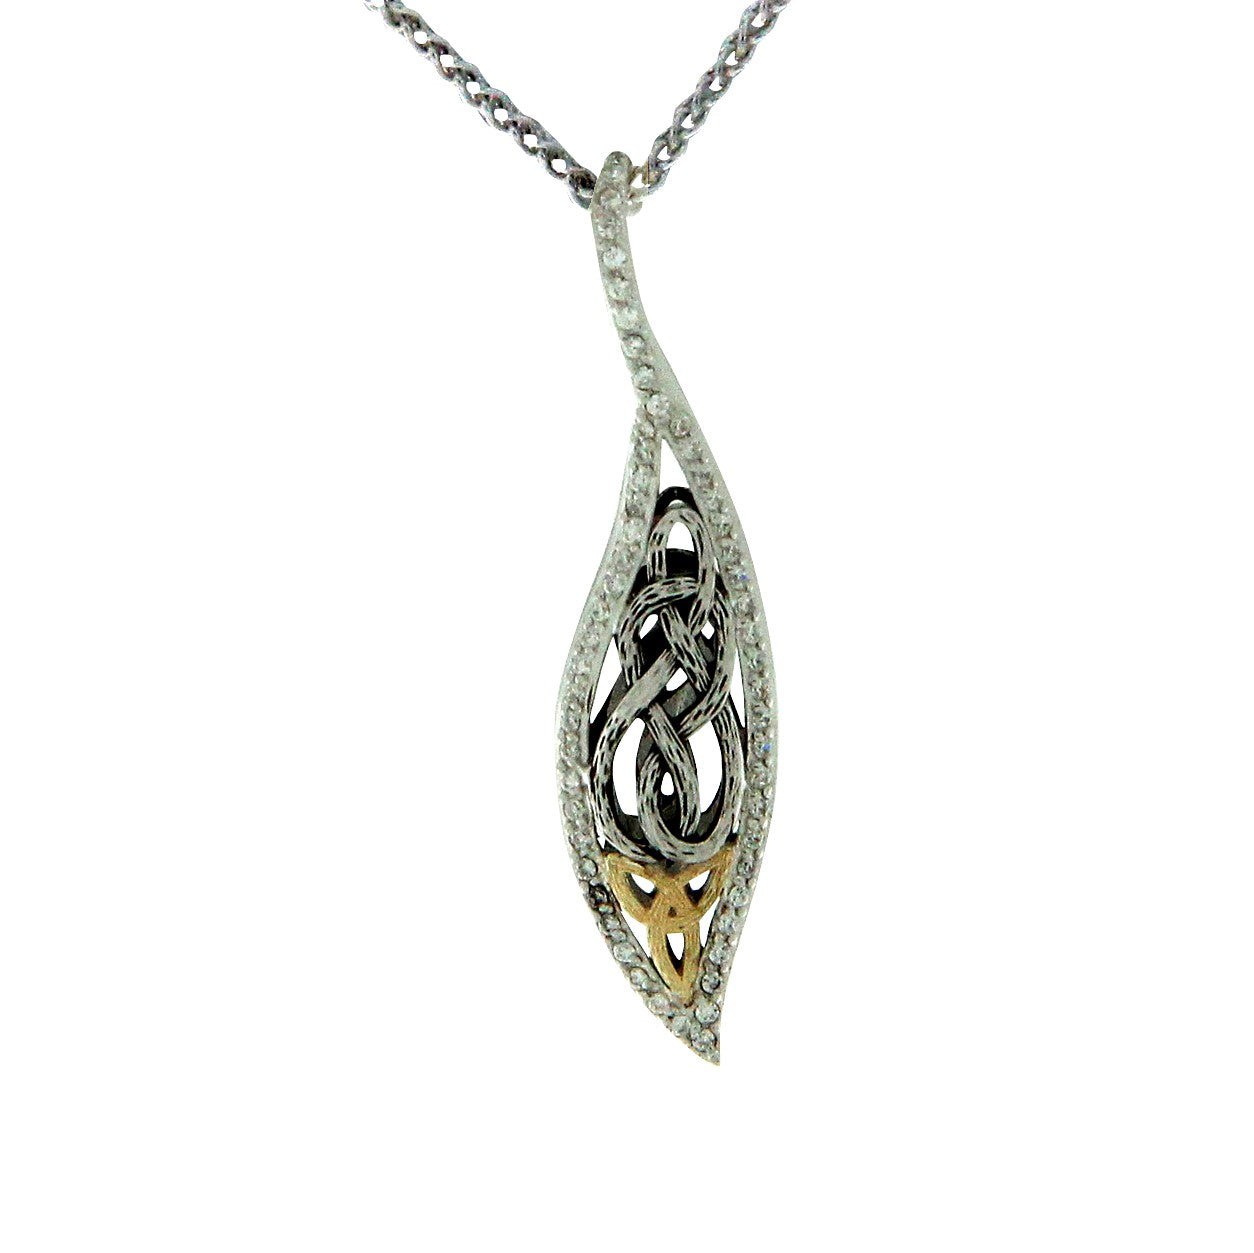 Barked Leaf Pendant